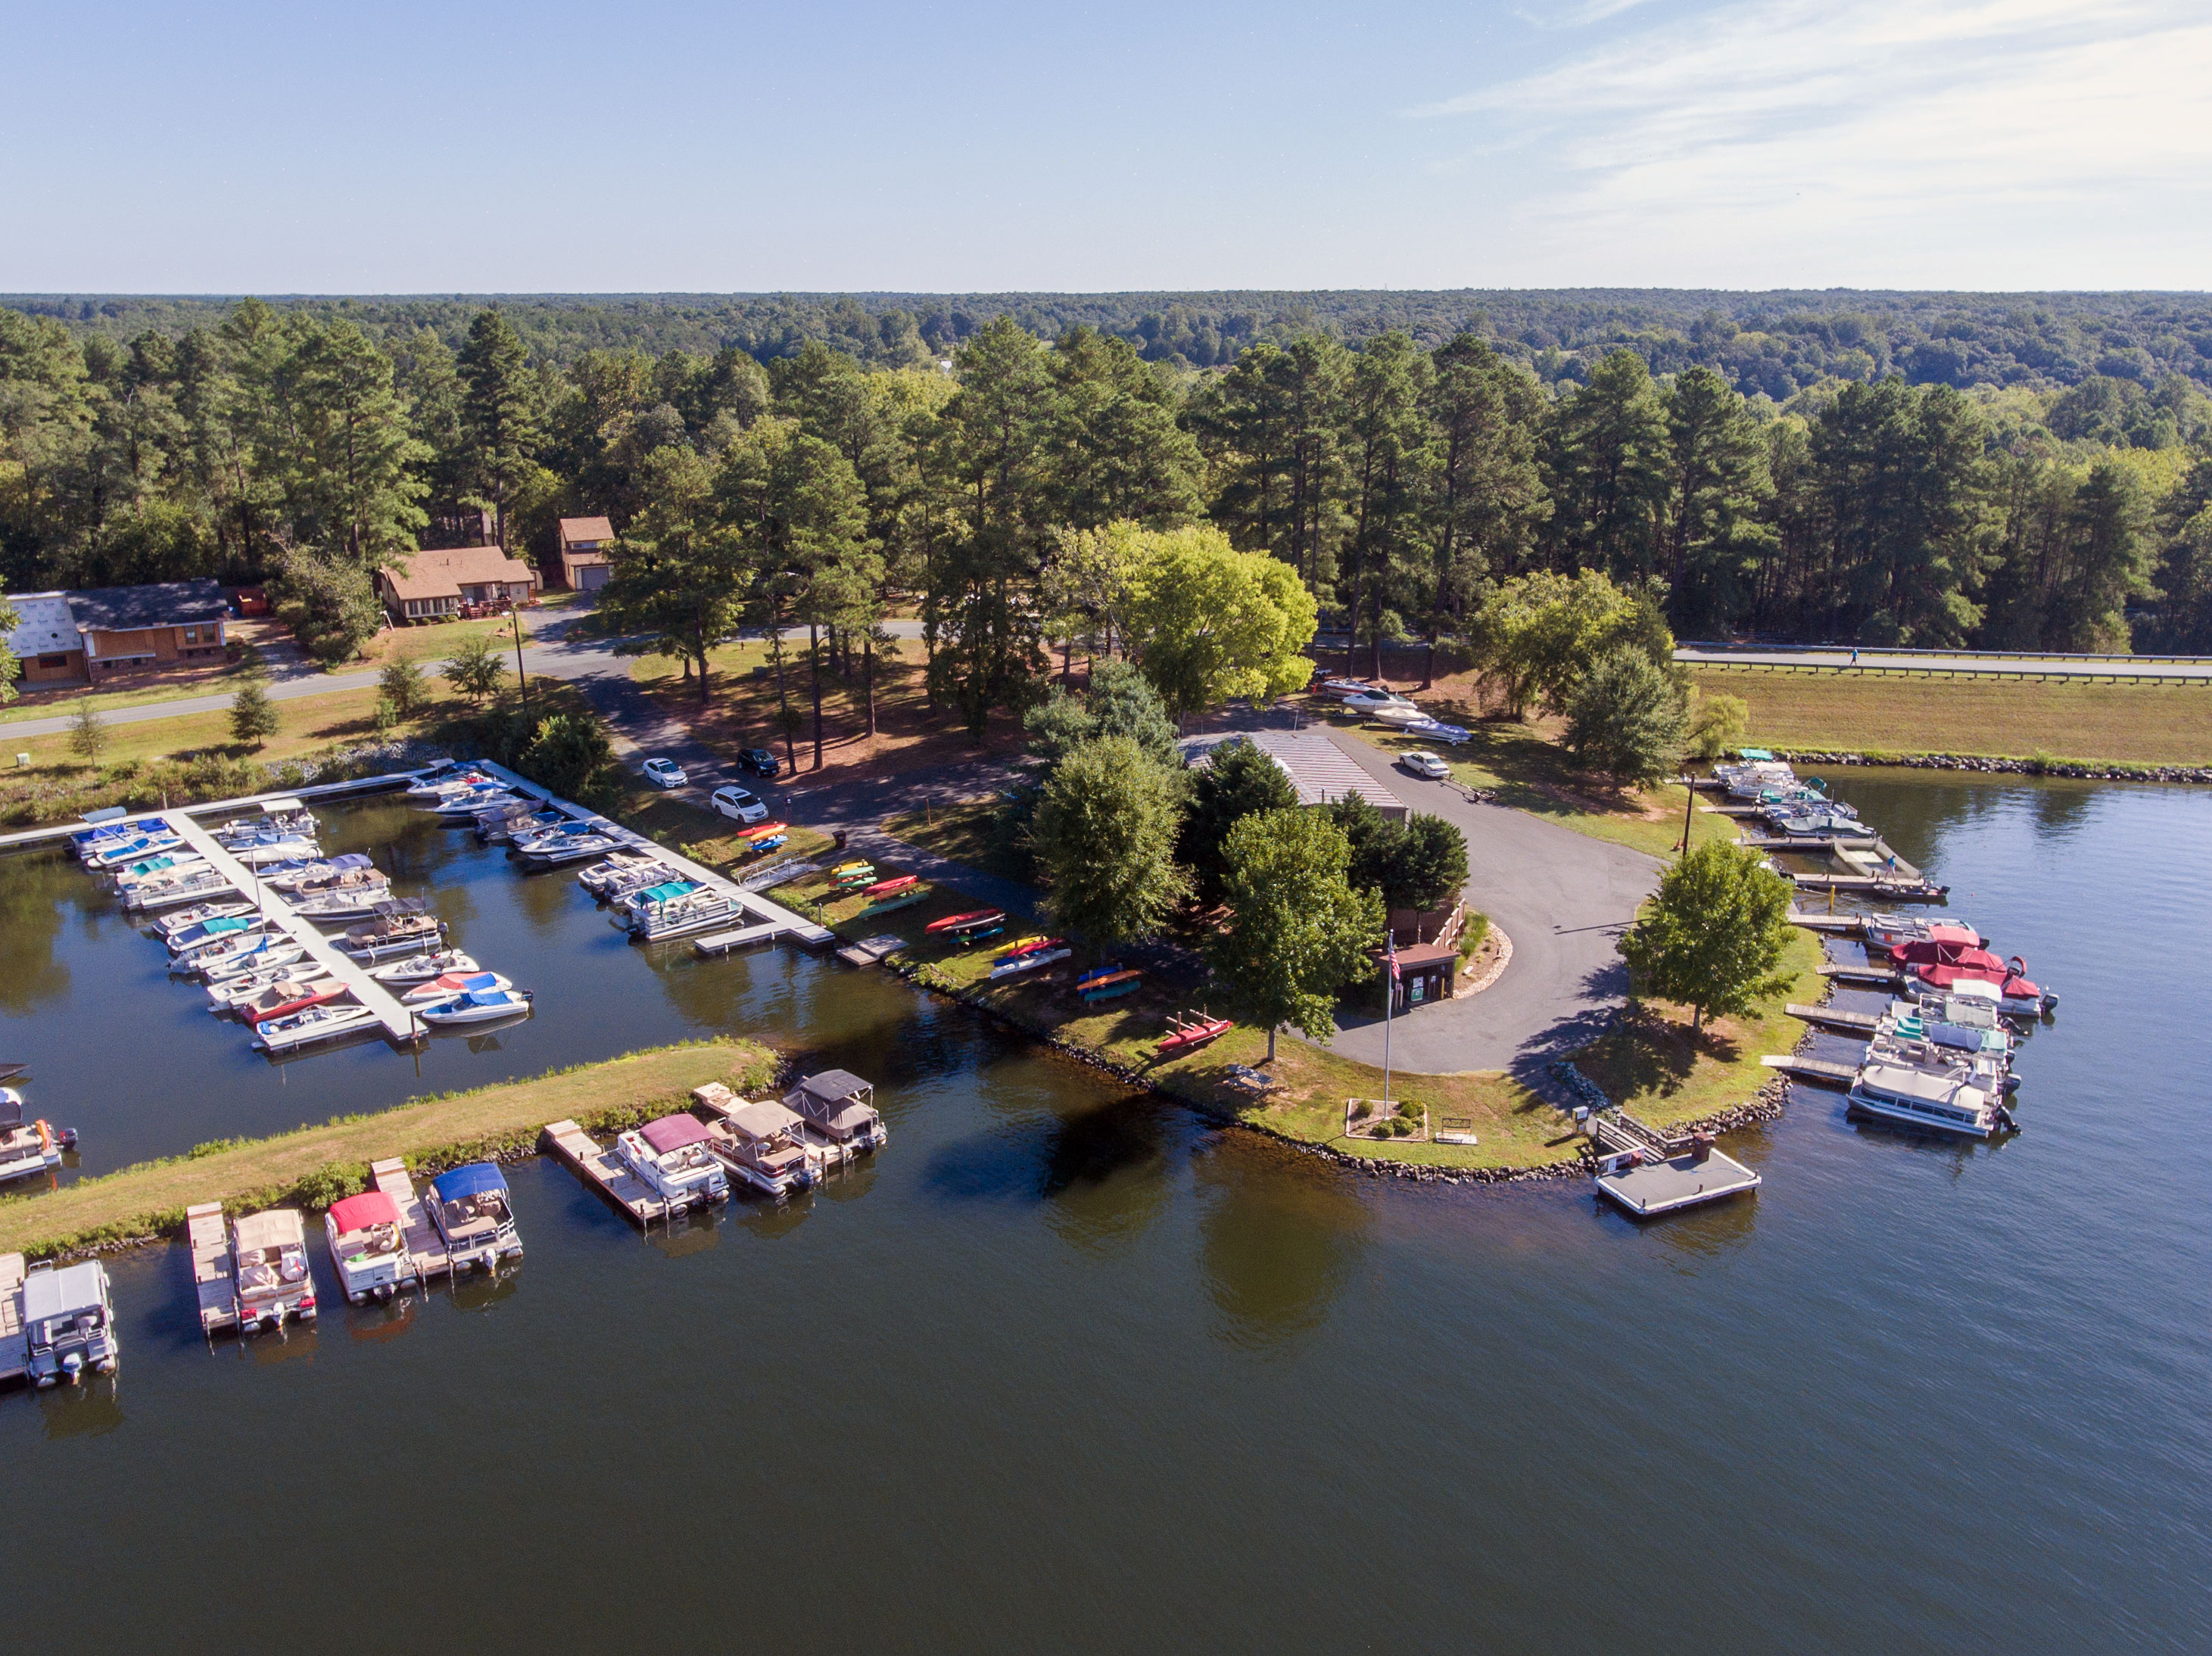 The Marina at Lake Monticello